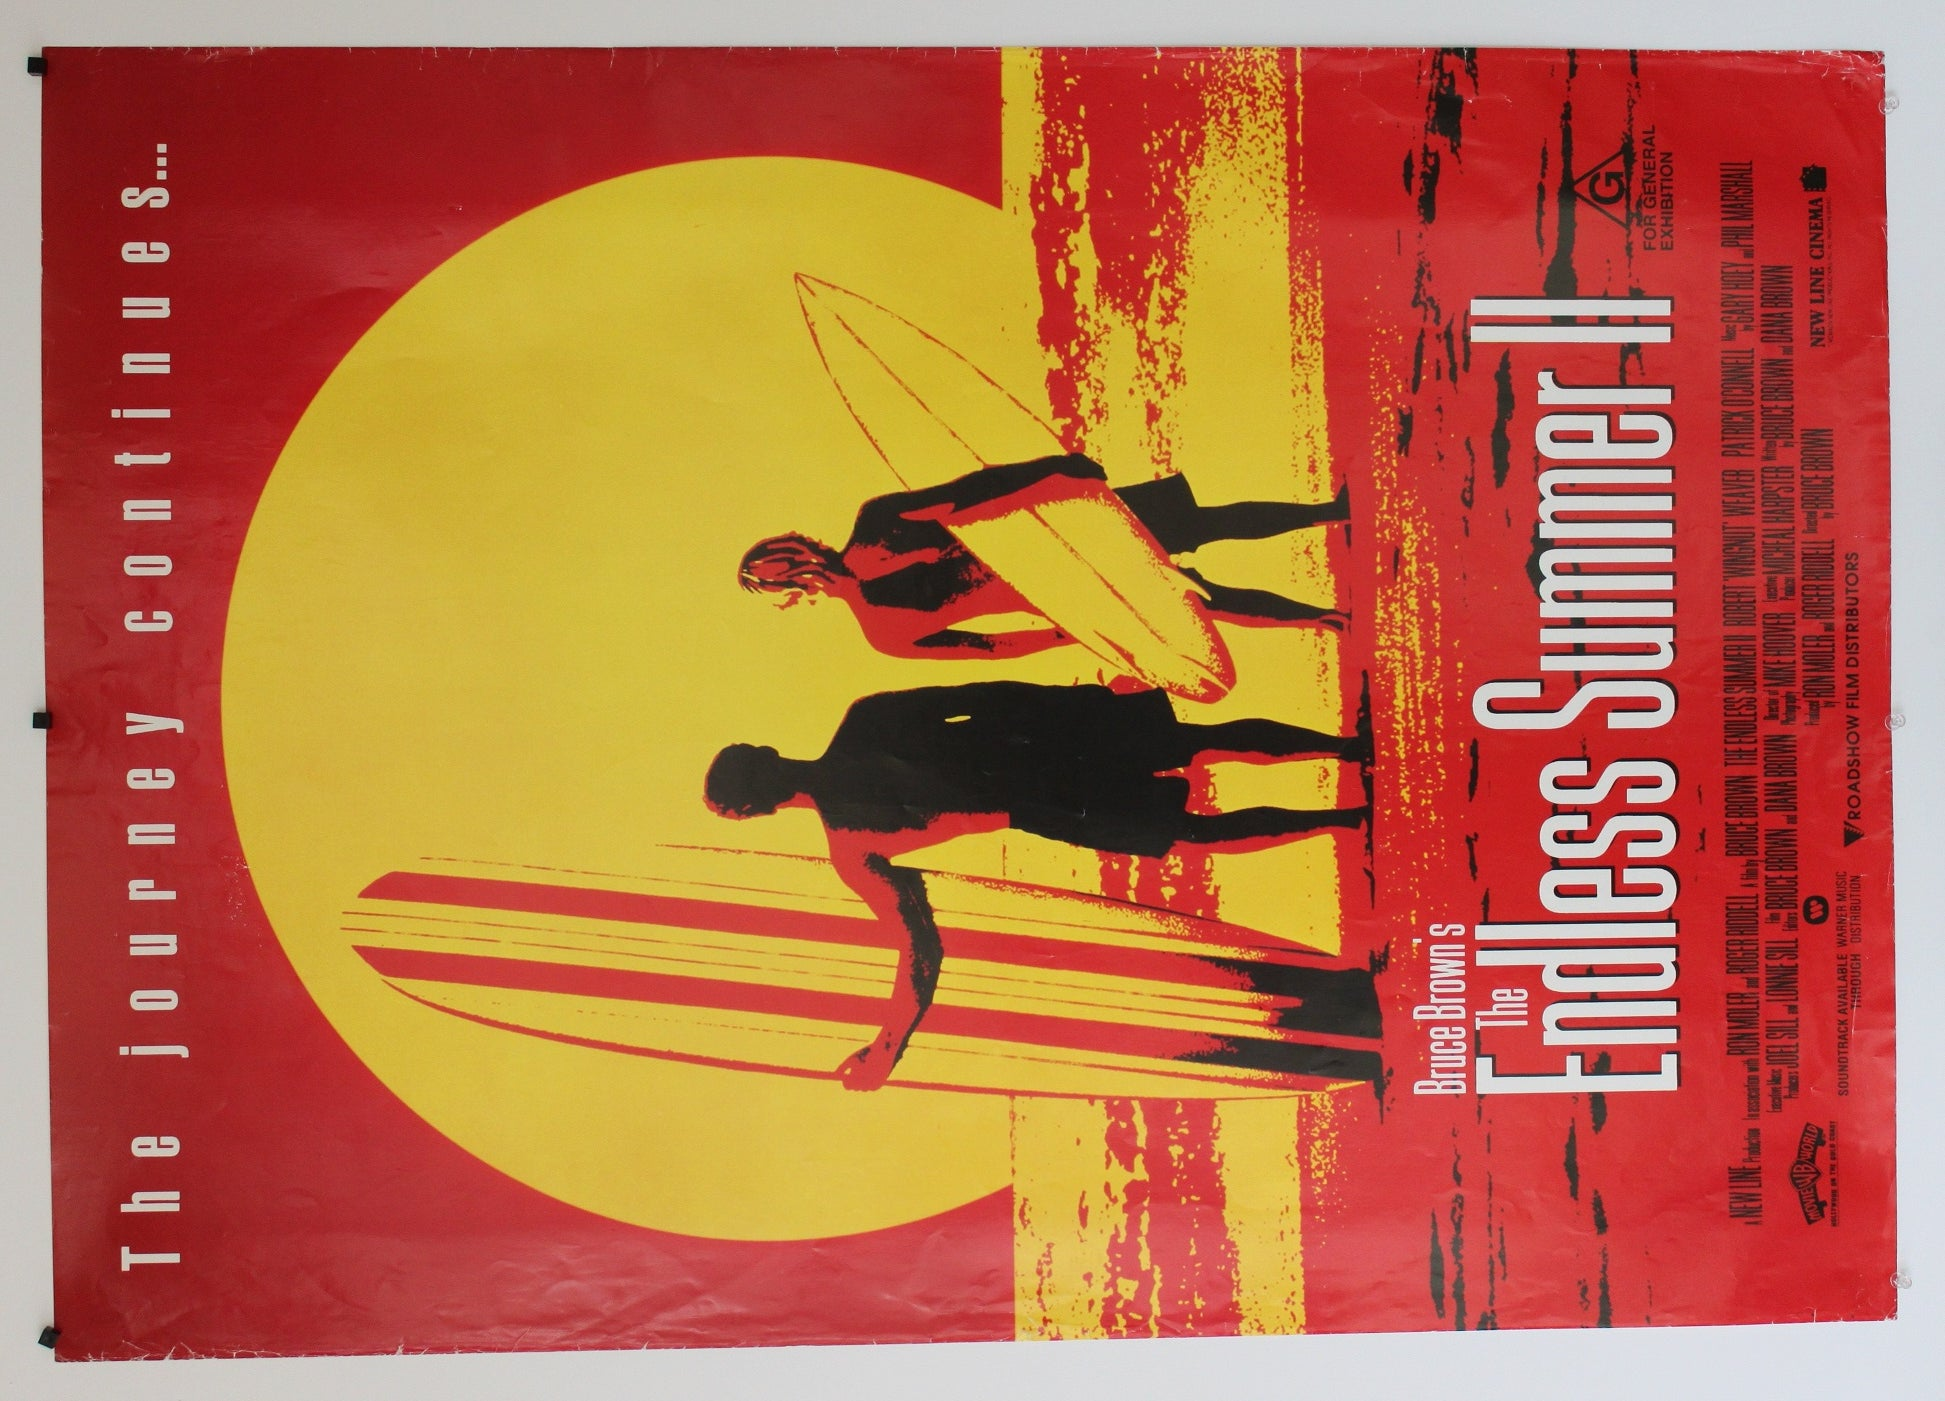 The Endless Summer II. Original one-sheet poster.